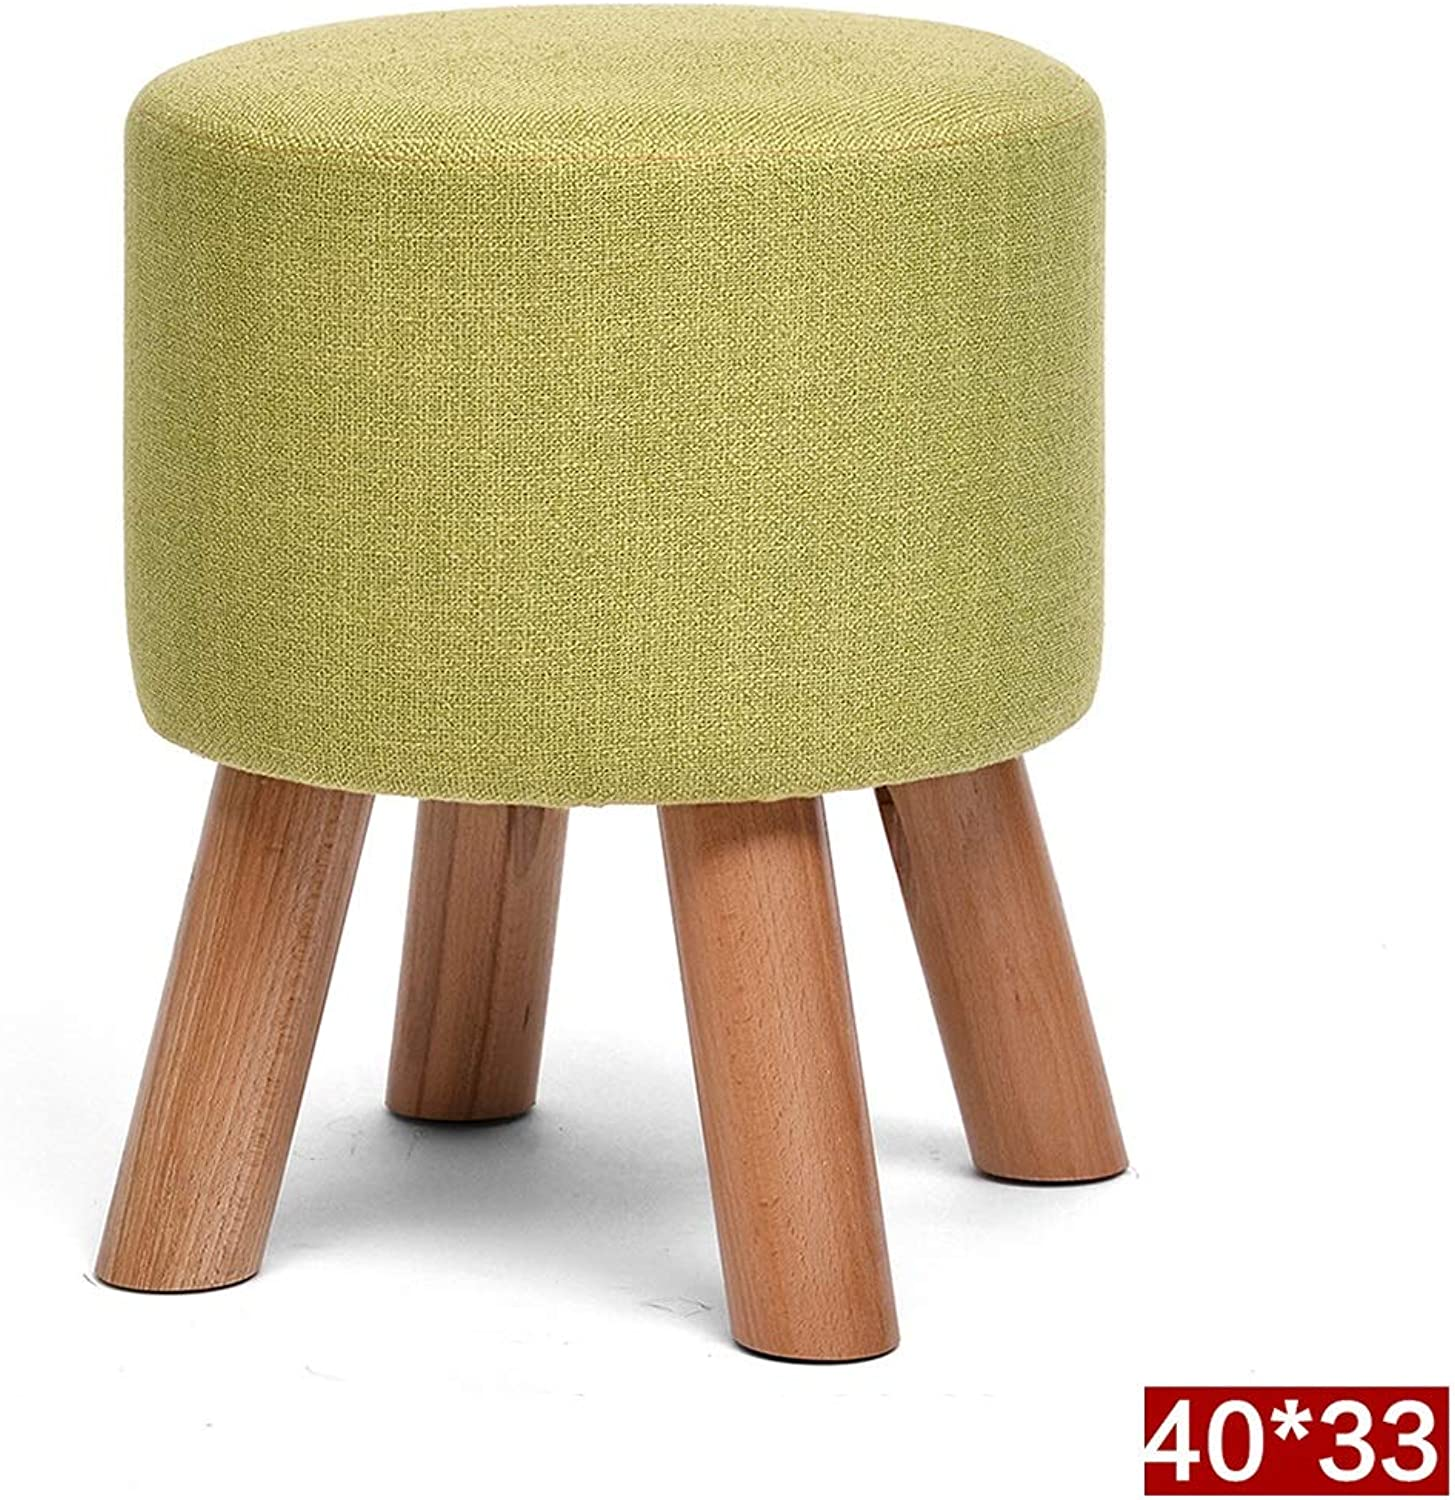 WEIYV-Barstools,bar Chair First Wood Change shoes Bench Fashion Small Stool Solid Wood Low Stool Creative shoes Bench Cloth Sofa Stool Pier Household Stool (color   Matcha 40cm, Size   A)